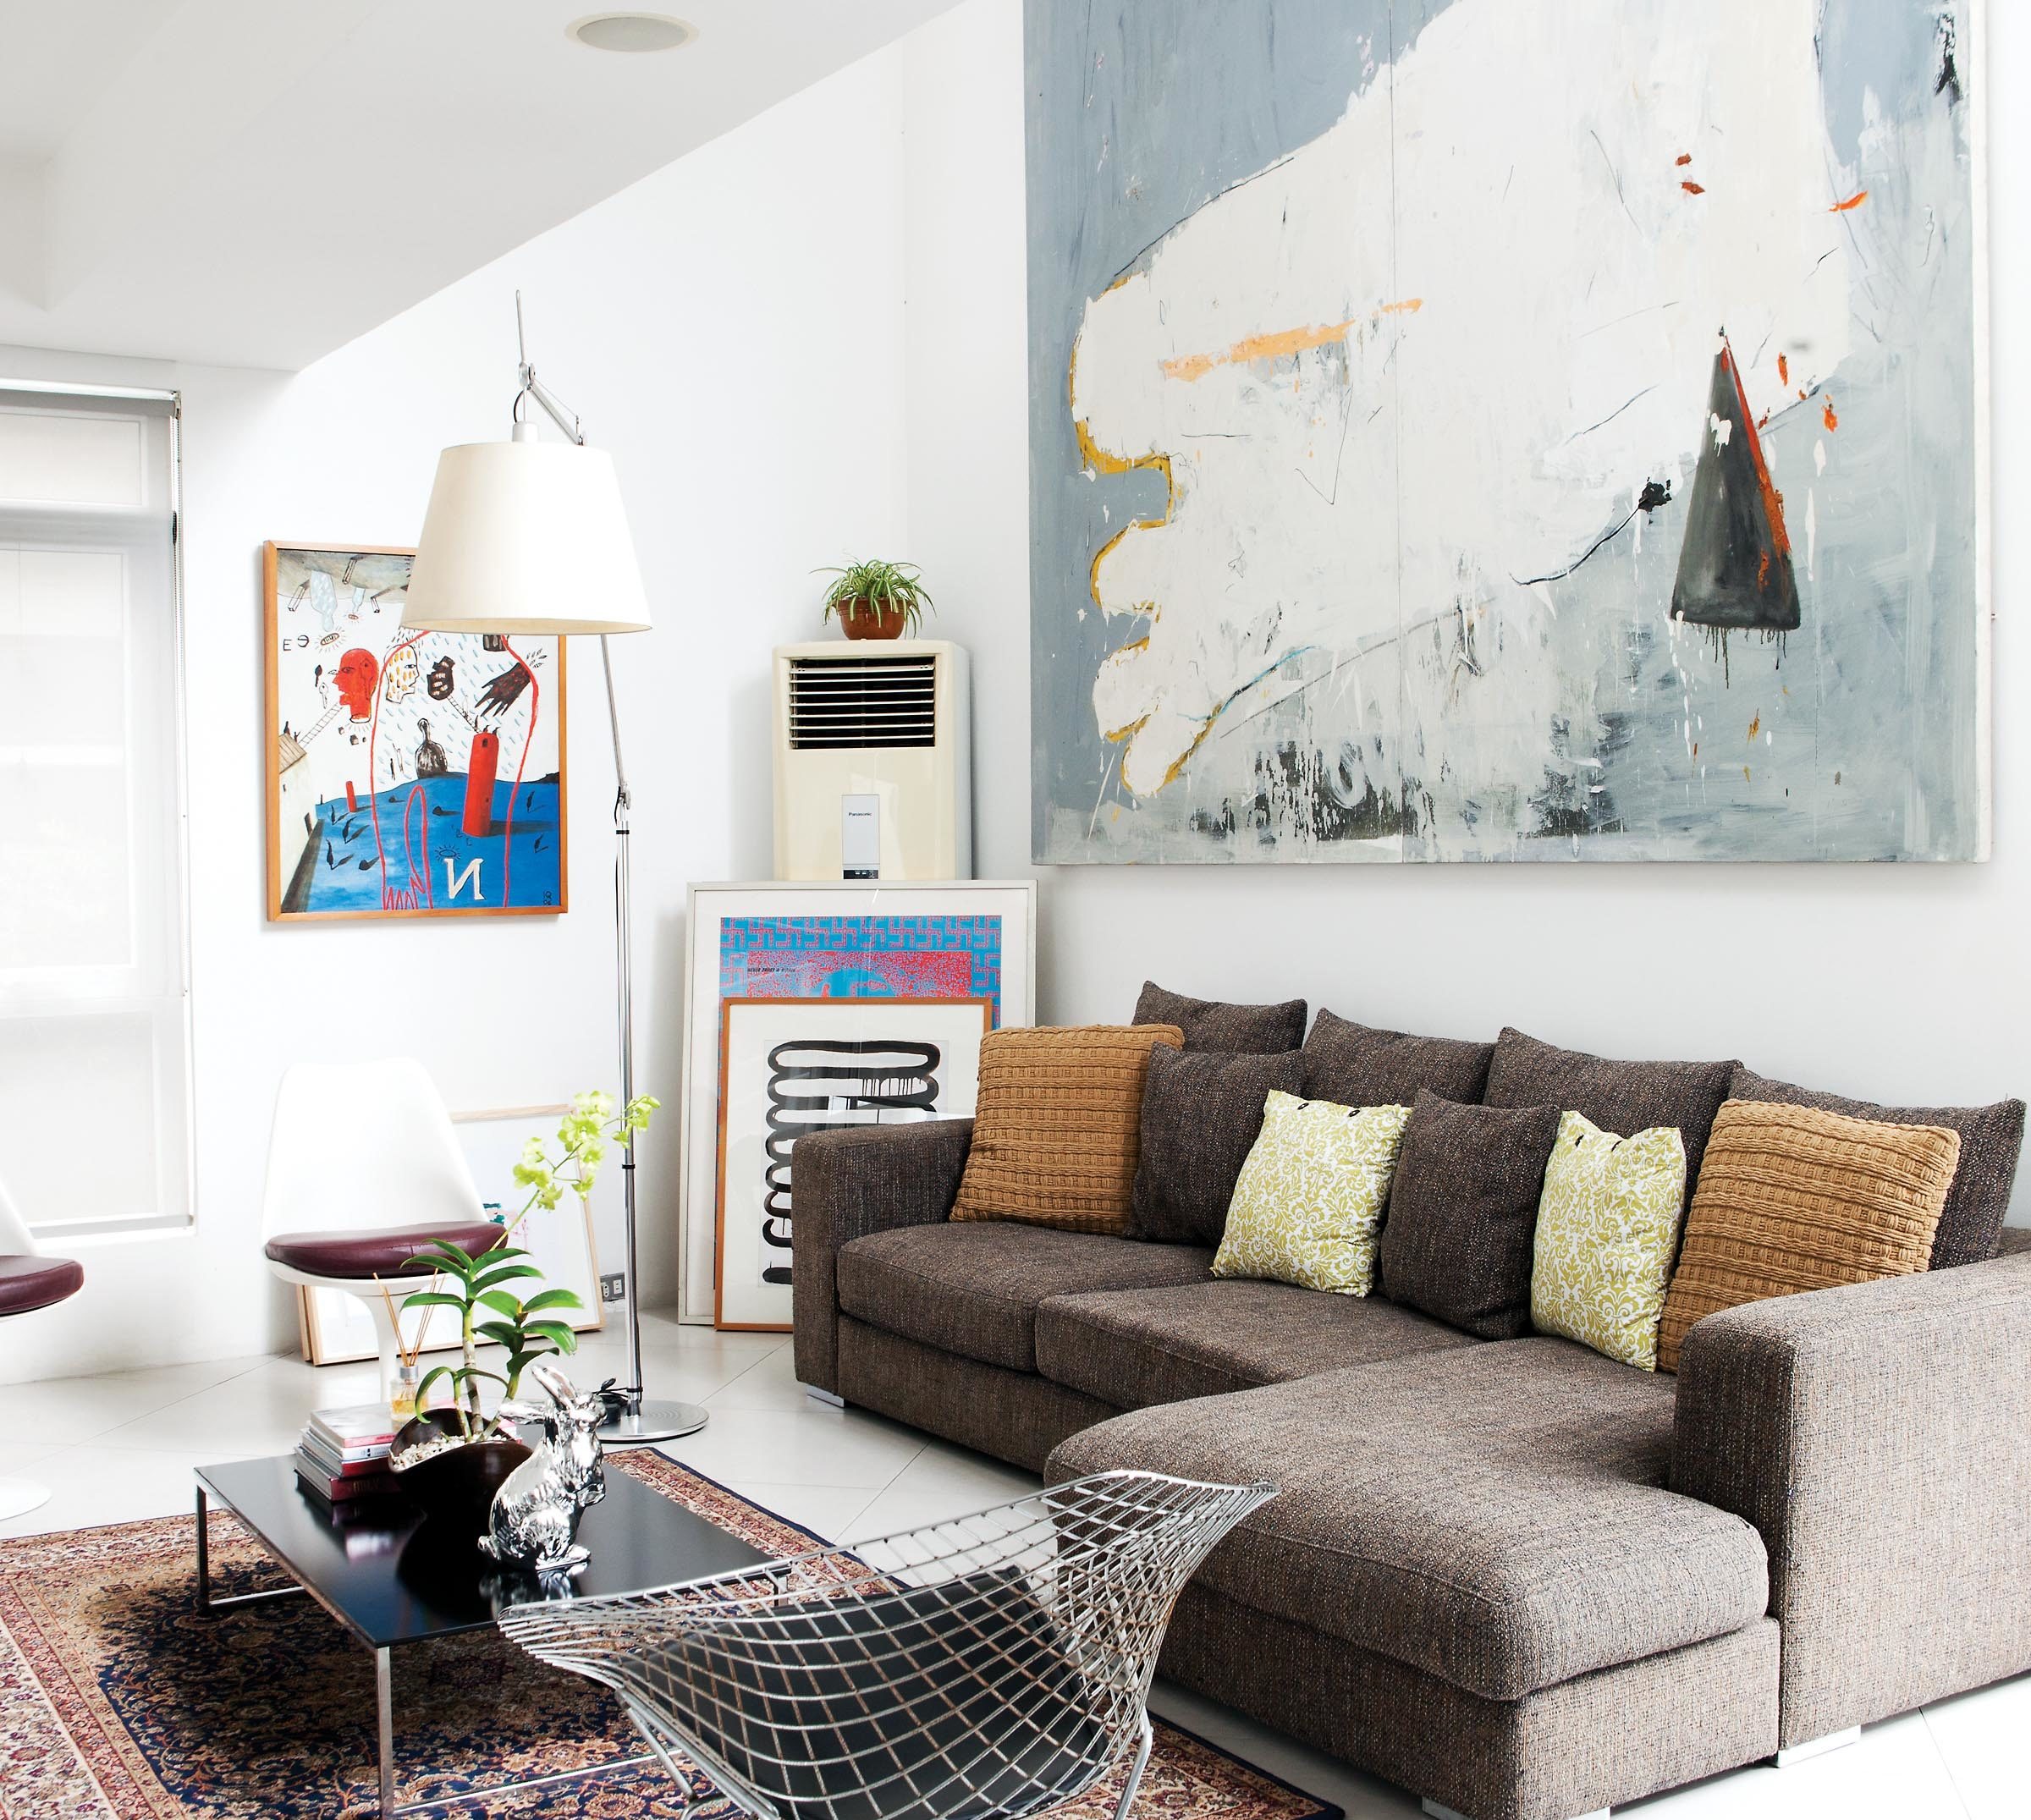 White walls allow the art pieces to stand out